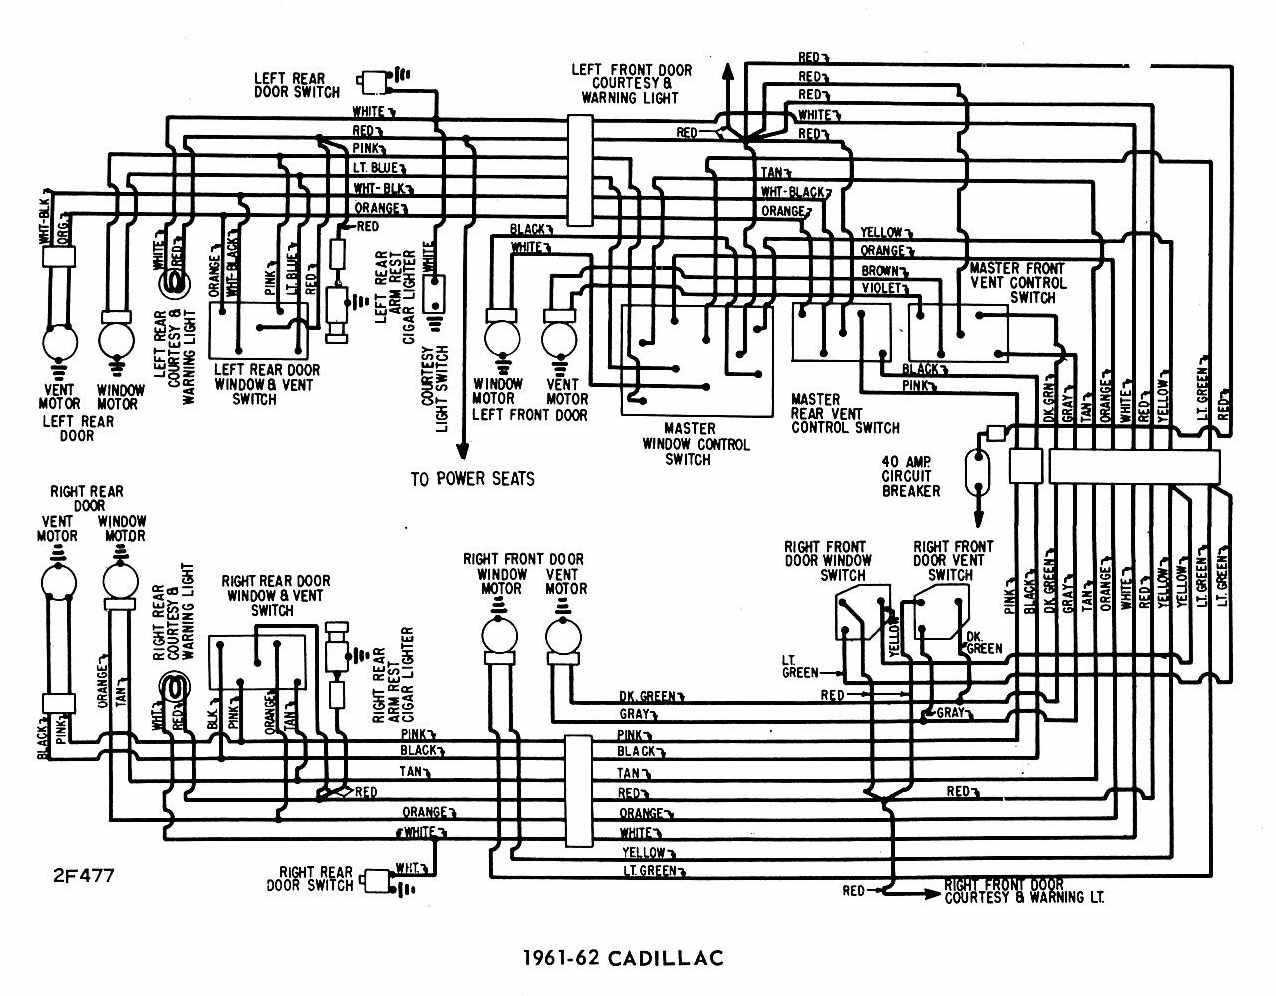 Wiring Diagram For 2004 Cadillac Escalade Wire Data Schema Cruiser Harness Radio Trusted Diagrams U2022 Rh Caribbeanblues Co 2003 Pt Fuse Box